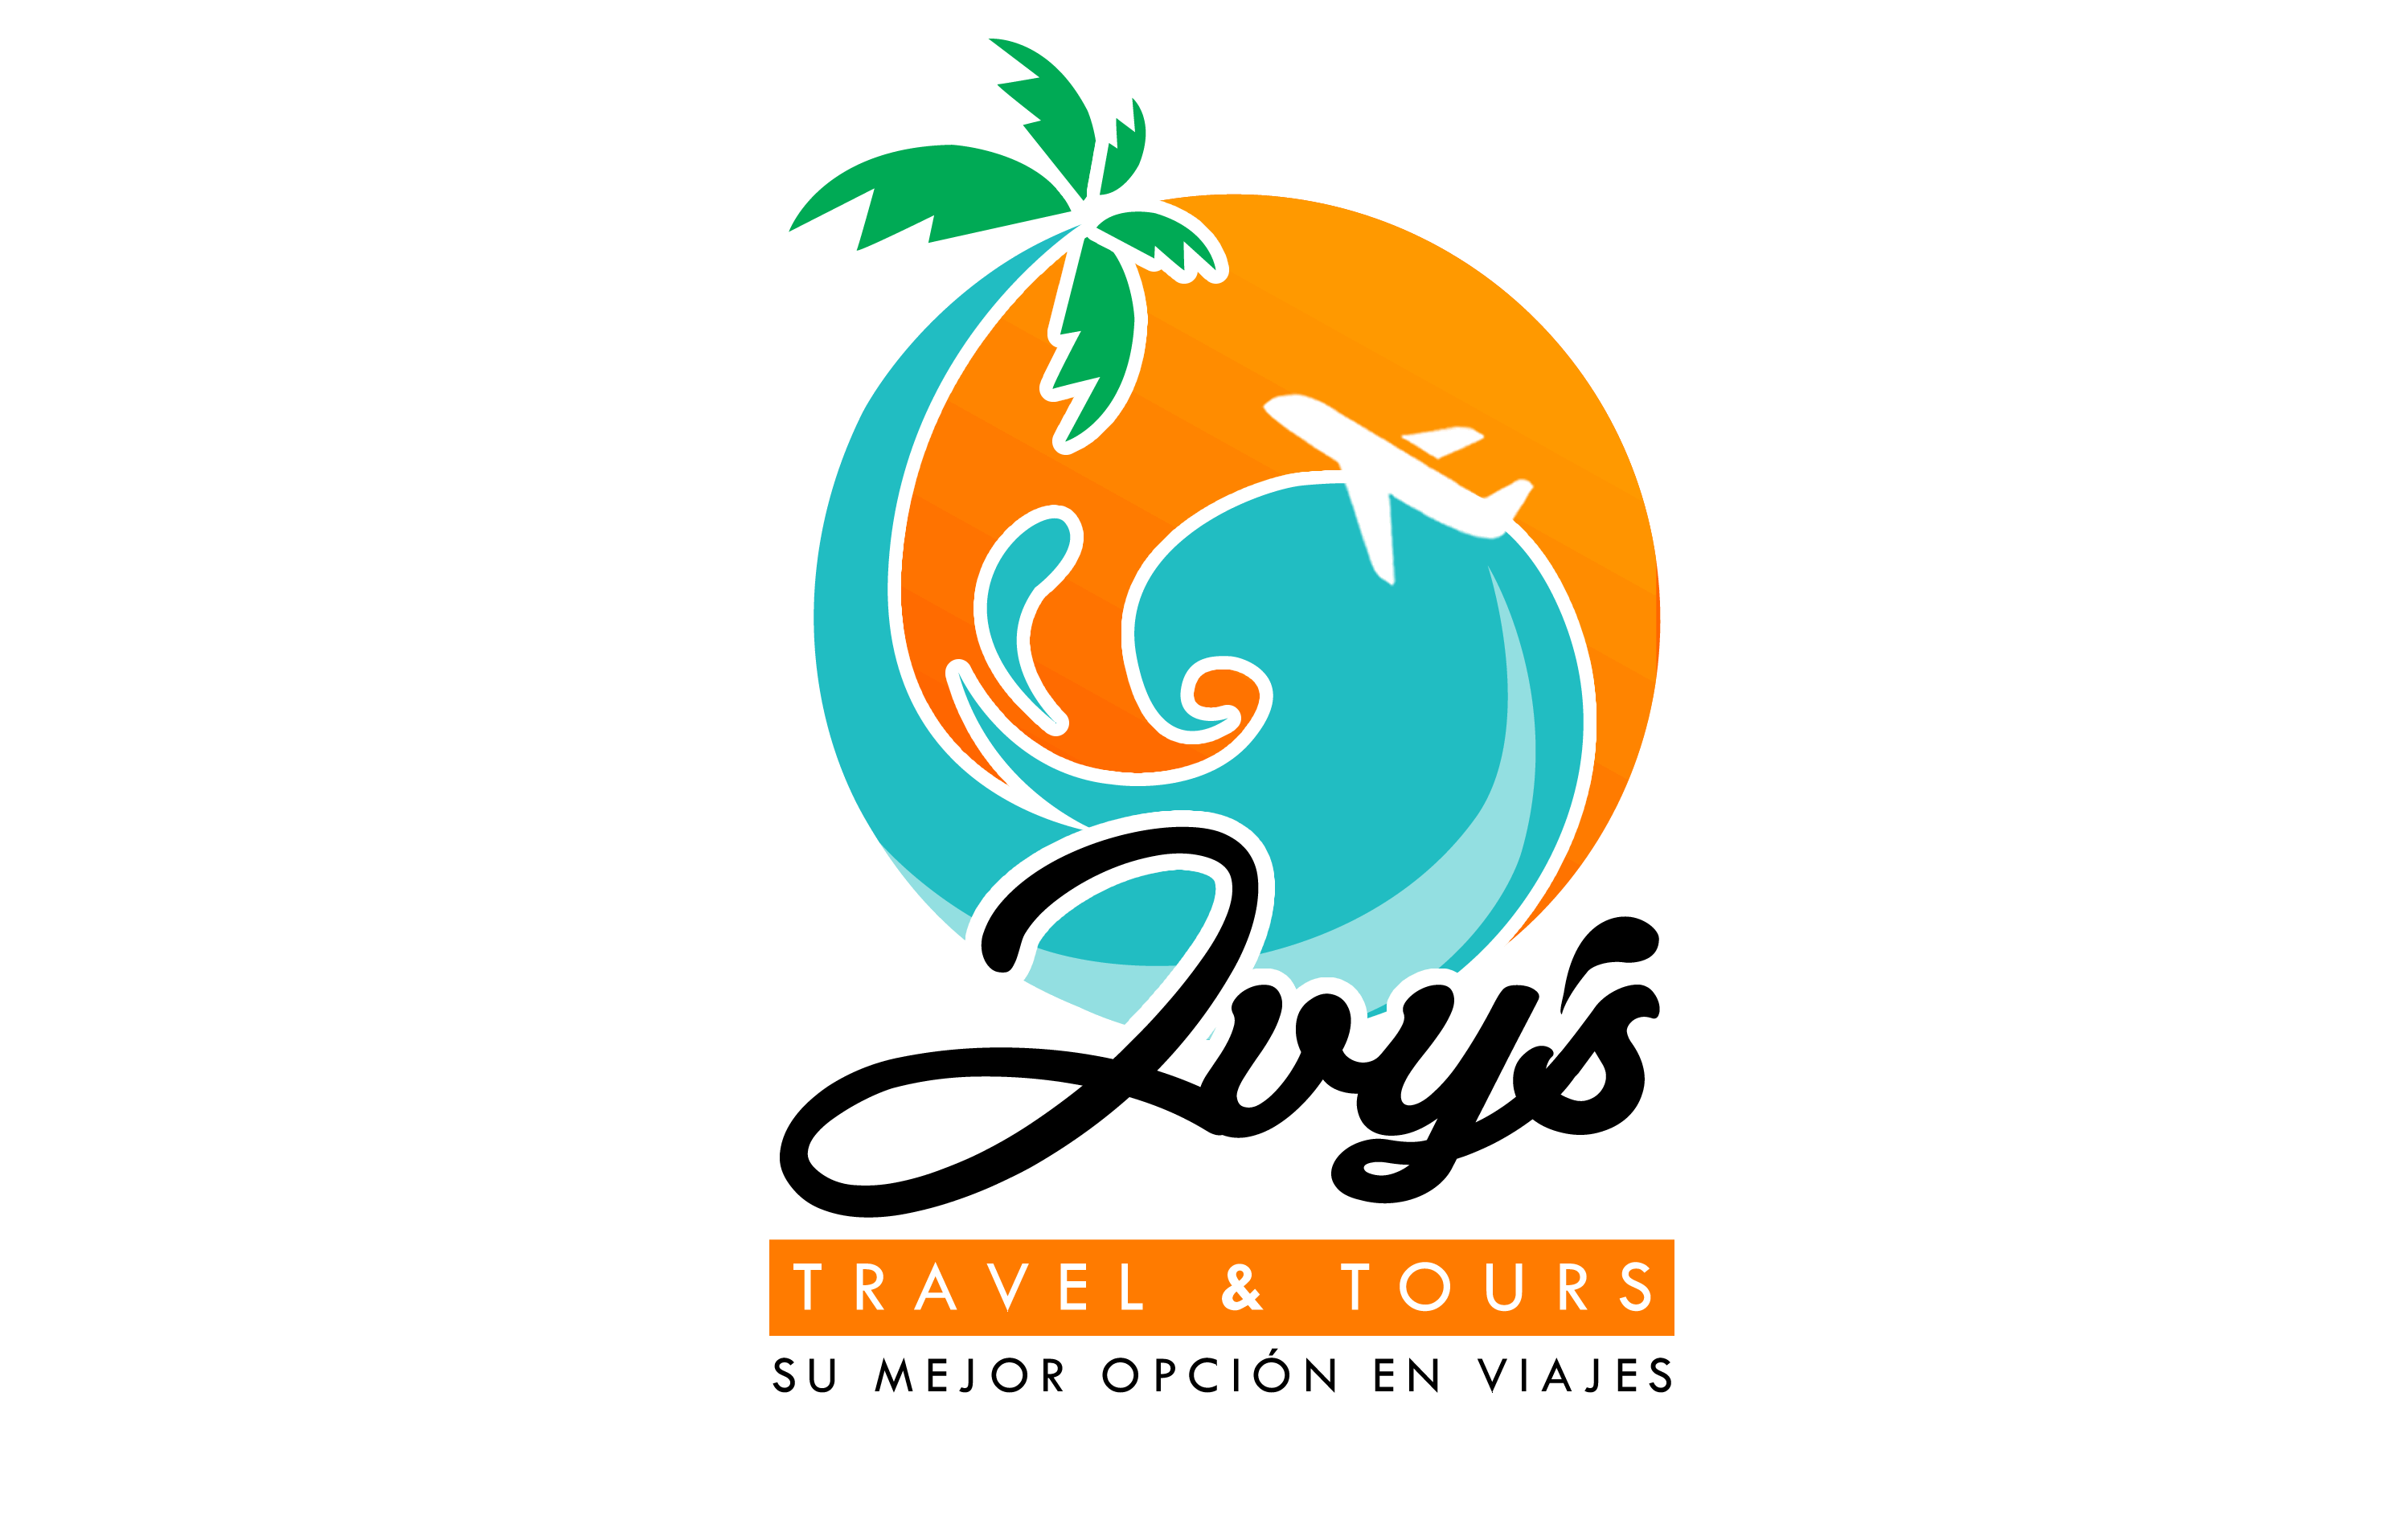 IVY S TRAVEL & TOURS